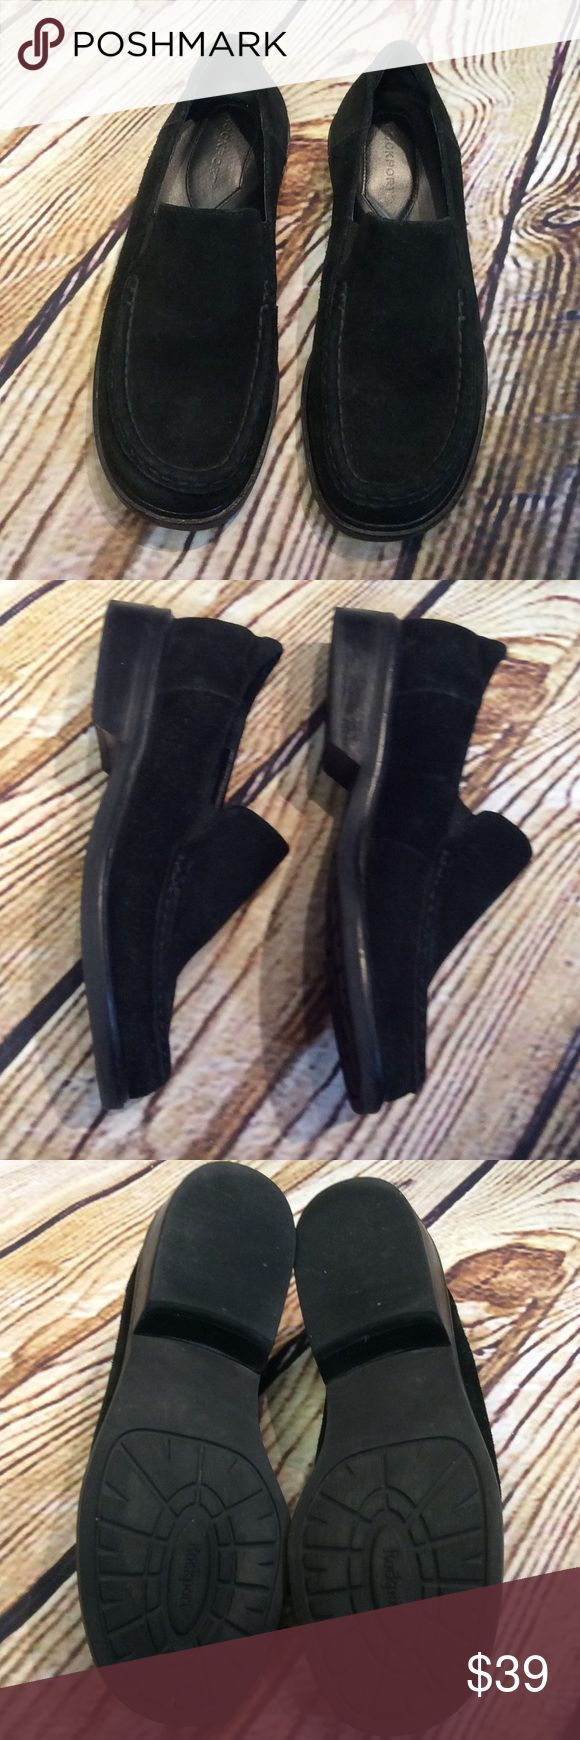 SZ 6.5W ROCKPORT BLACK SUEDE LEATHER LOAFERS/SHOES Lightly used black suede loafers by ROCKPORT. Comfy and great support Rockport Shoes Flats & Loafers